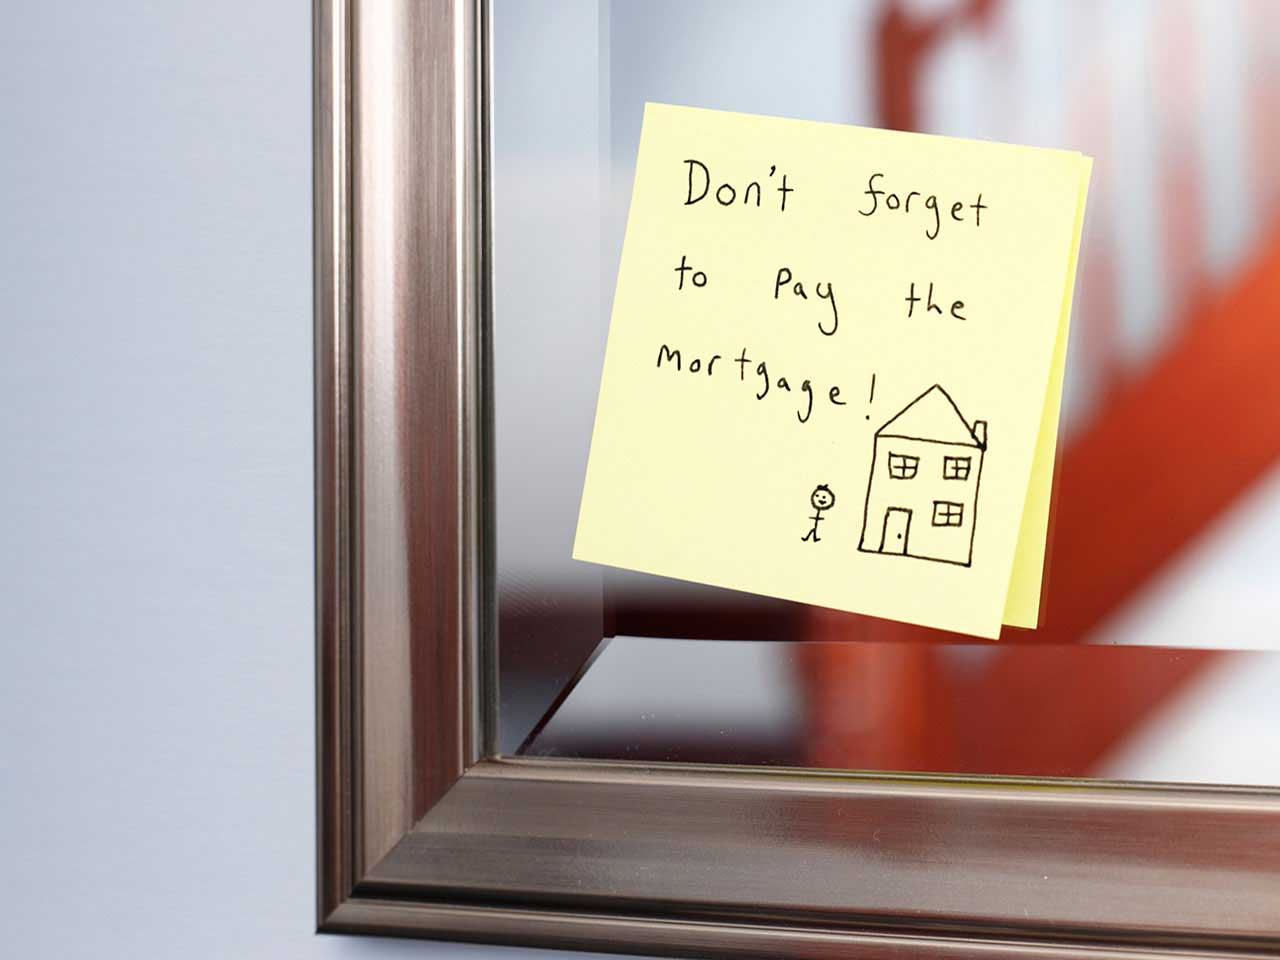 Reminder to pay mortgage on a post-it note stuck on a mirror